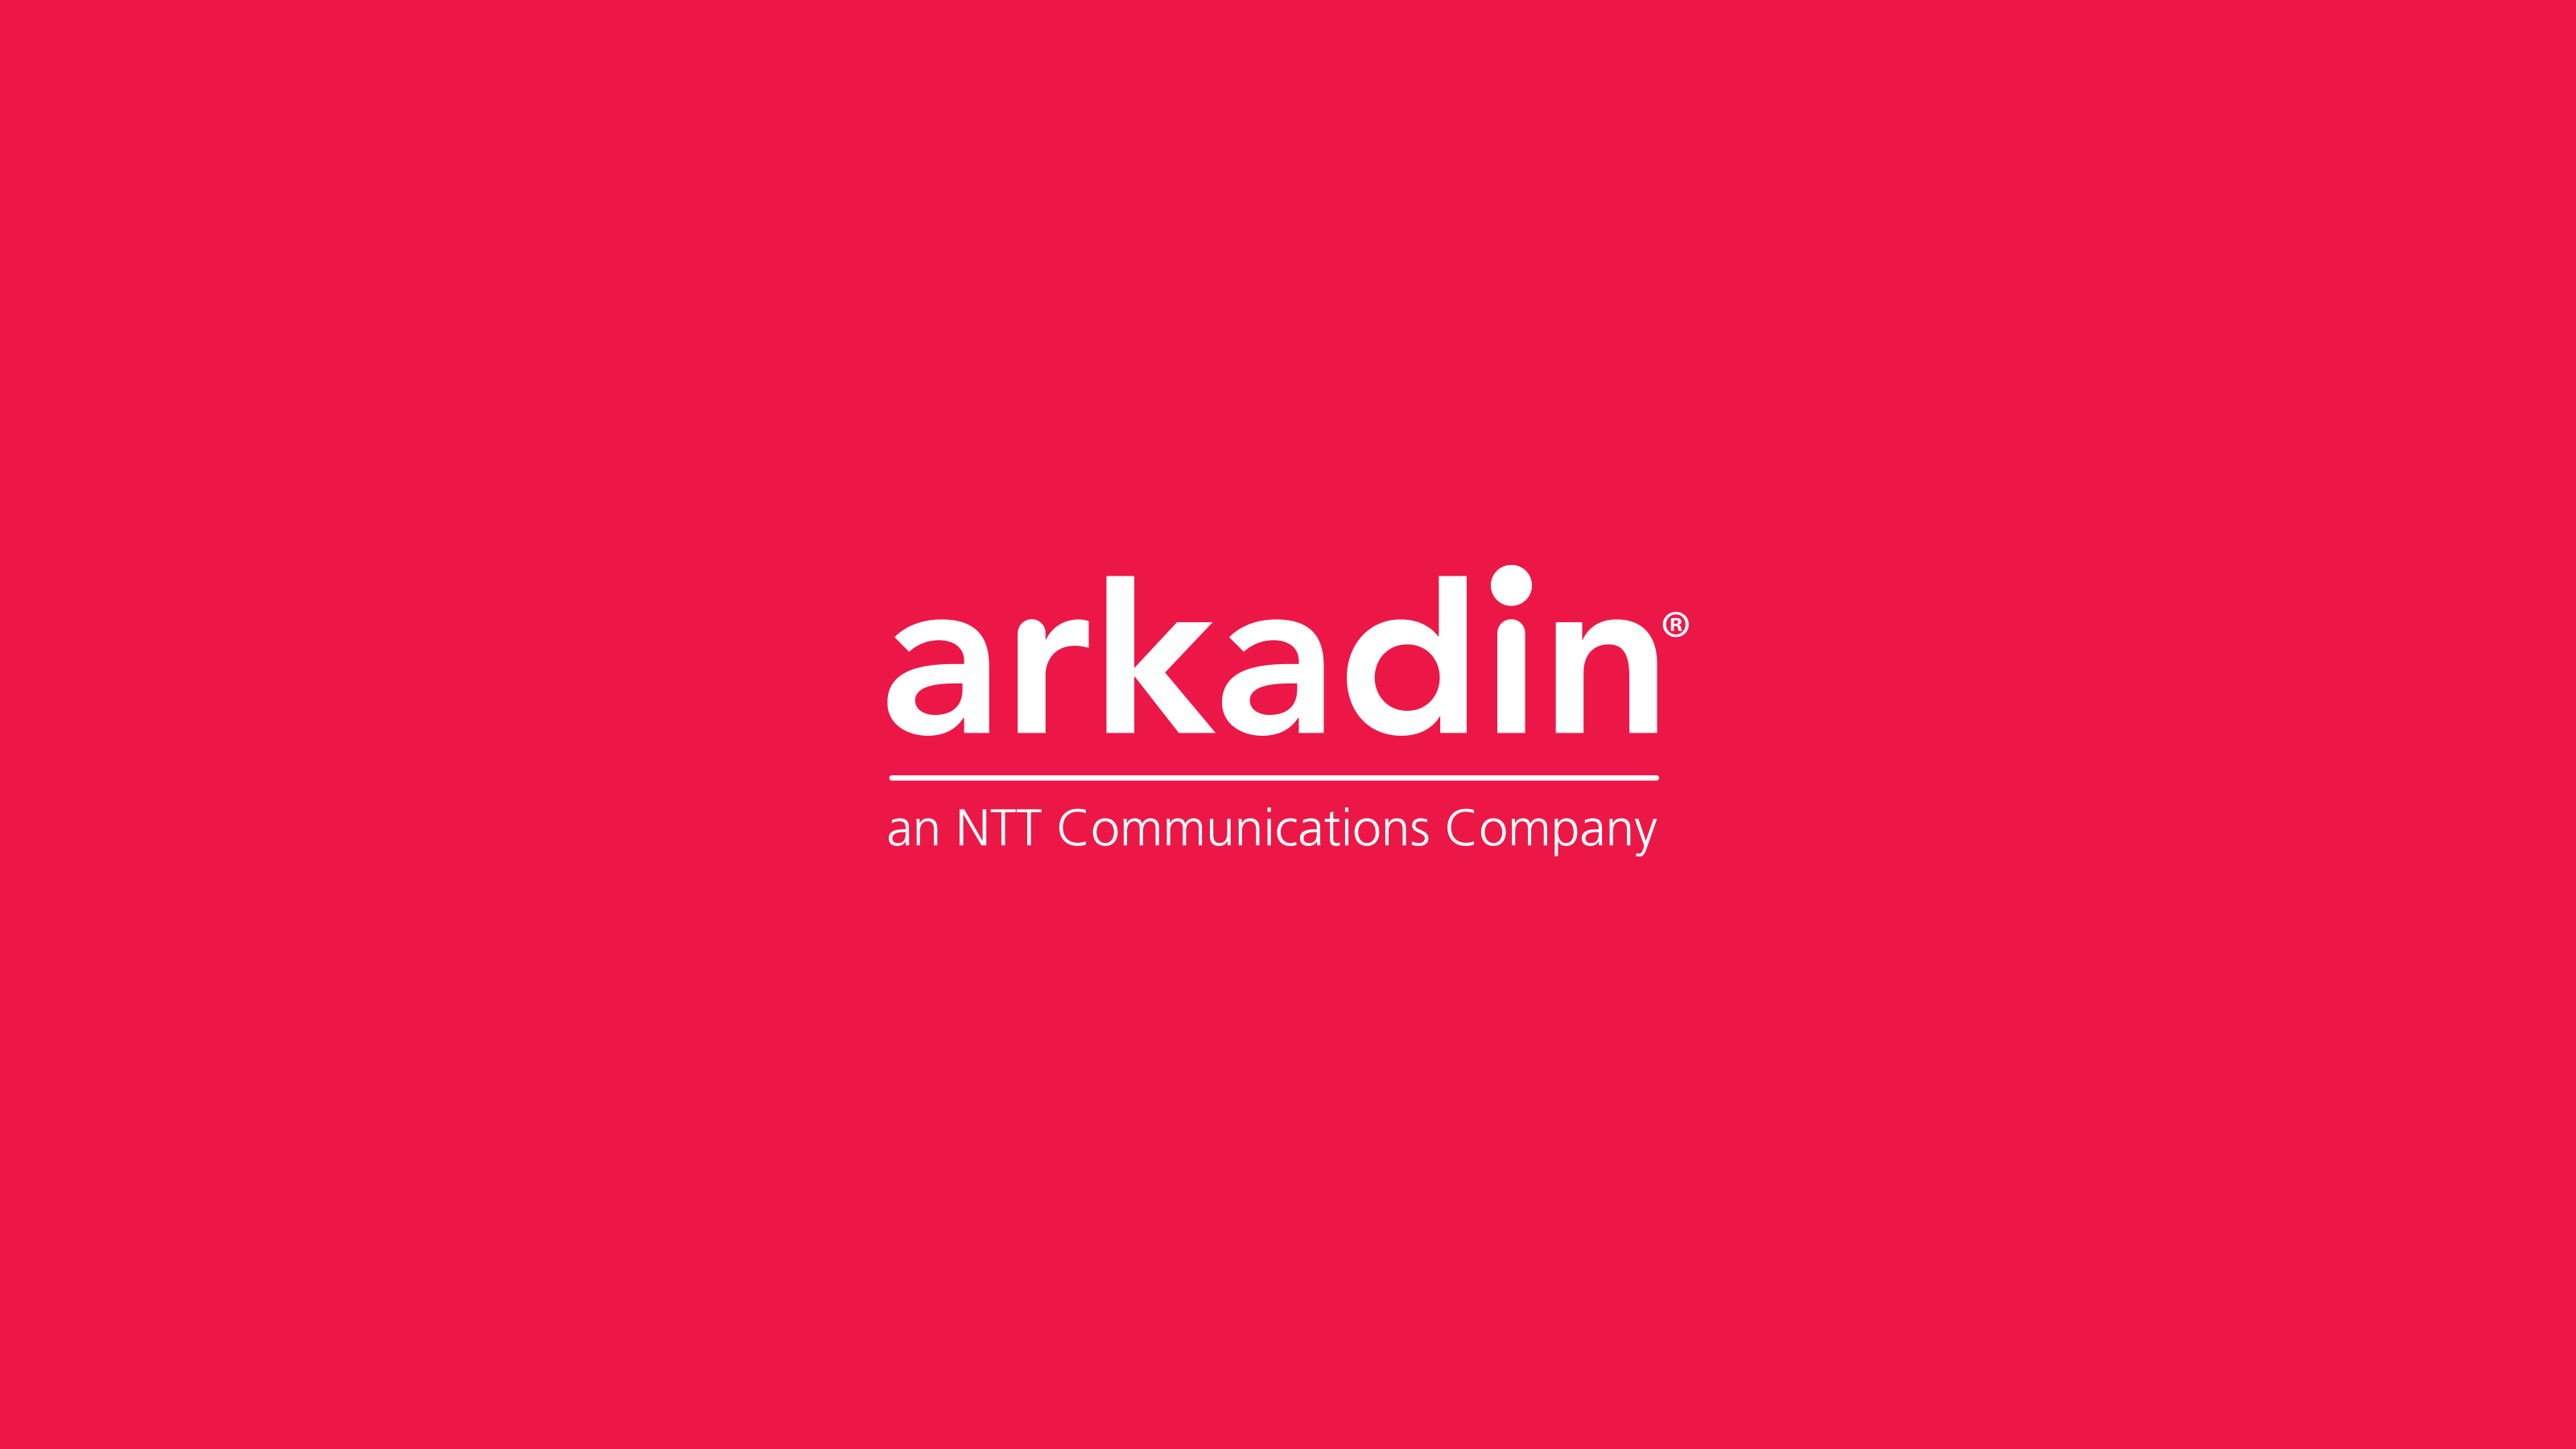 brand logo red background Arkadin